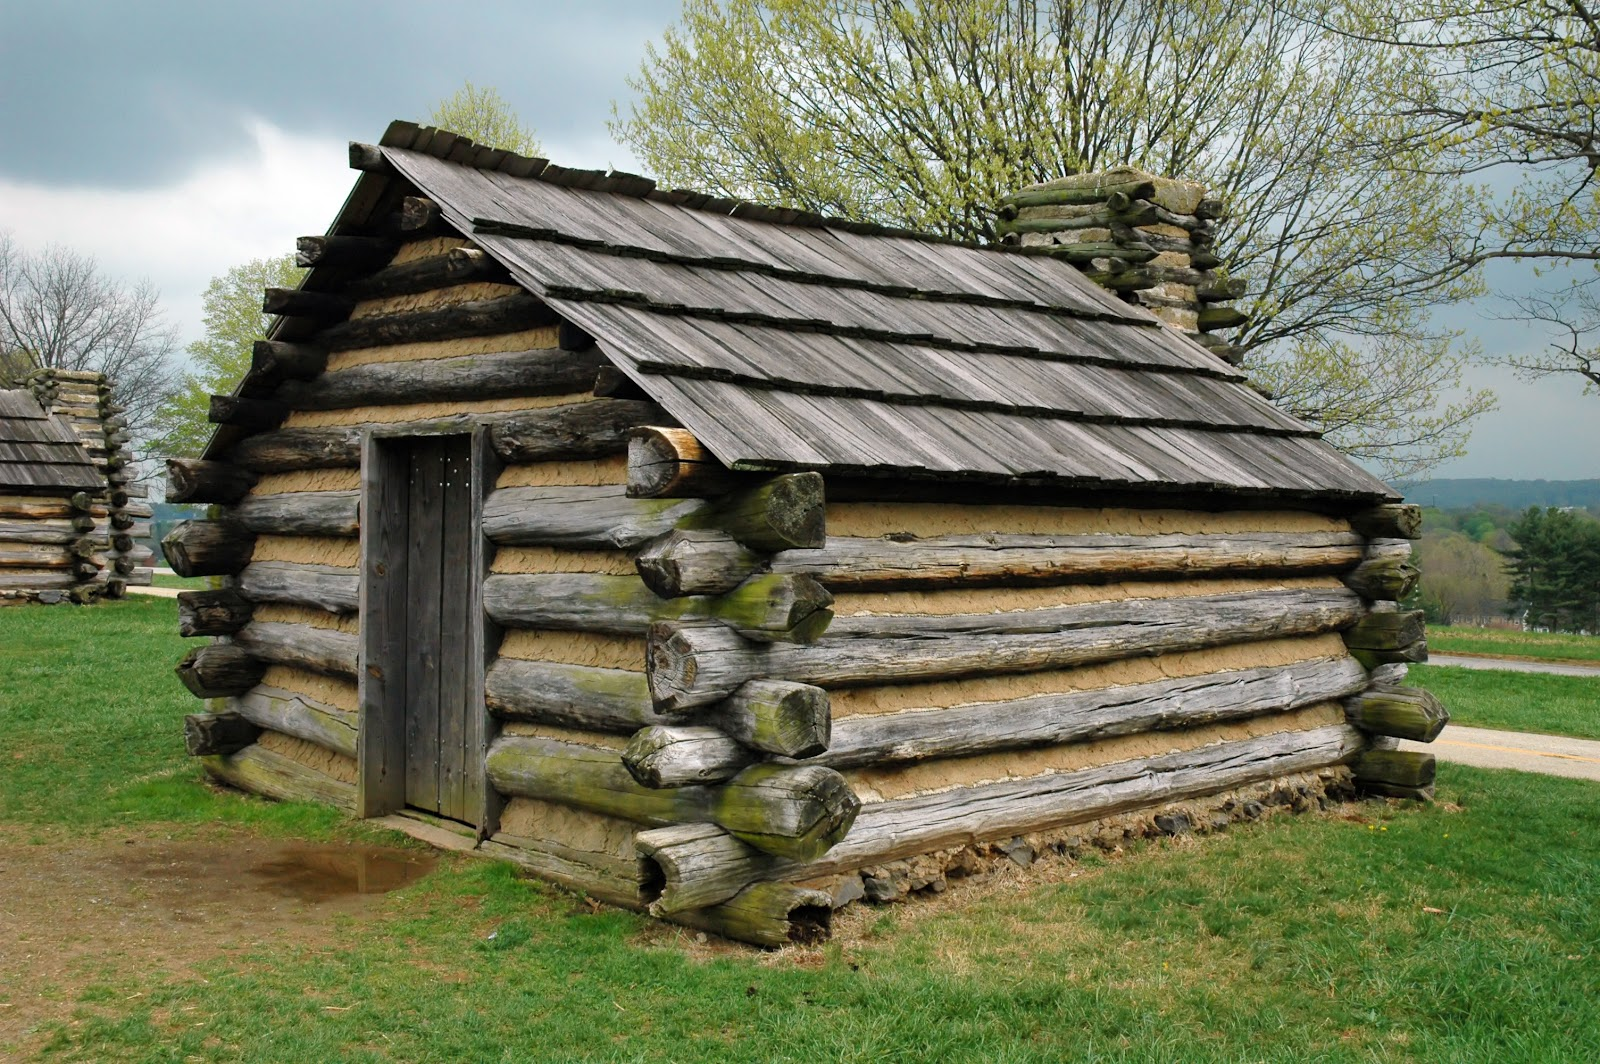 Replica log cabin at Valley